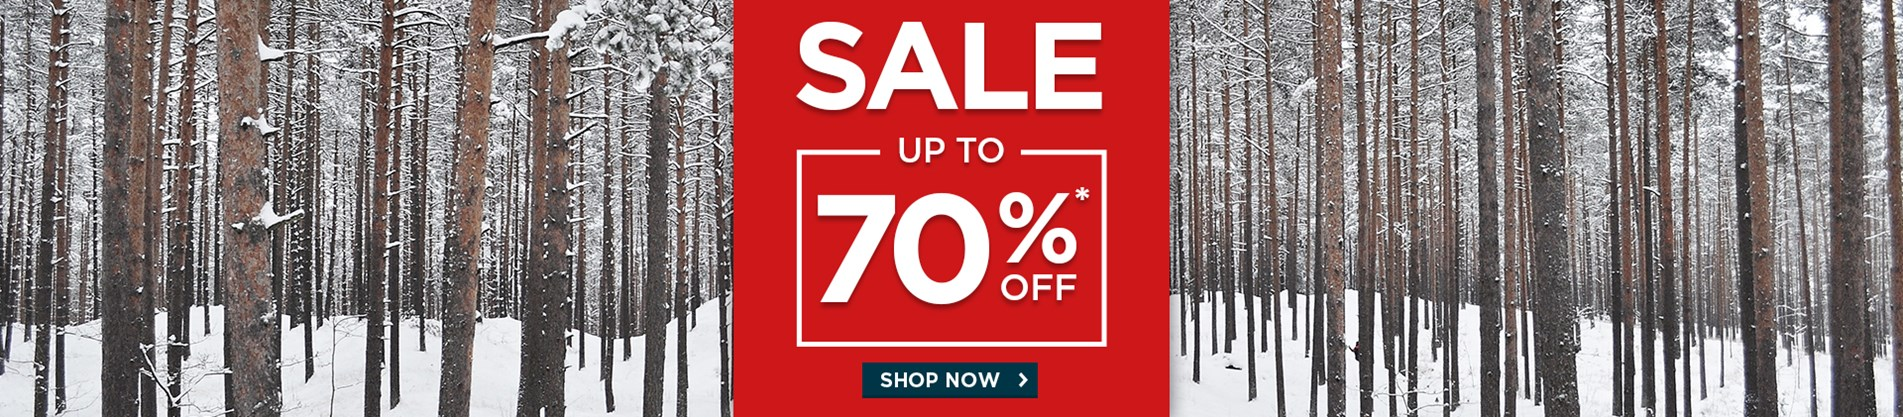 Sale - Up To 70% Off*